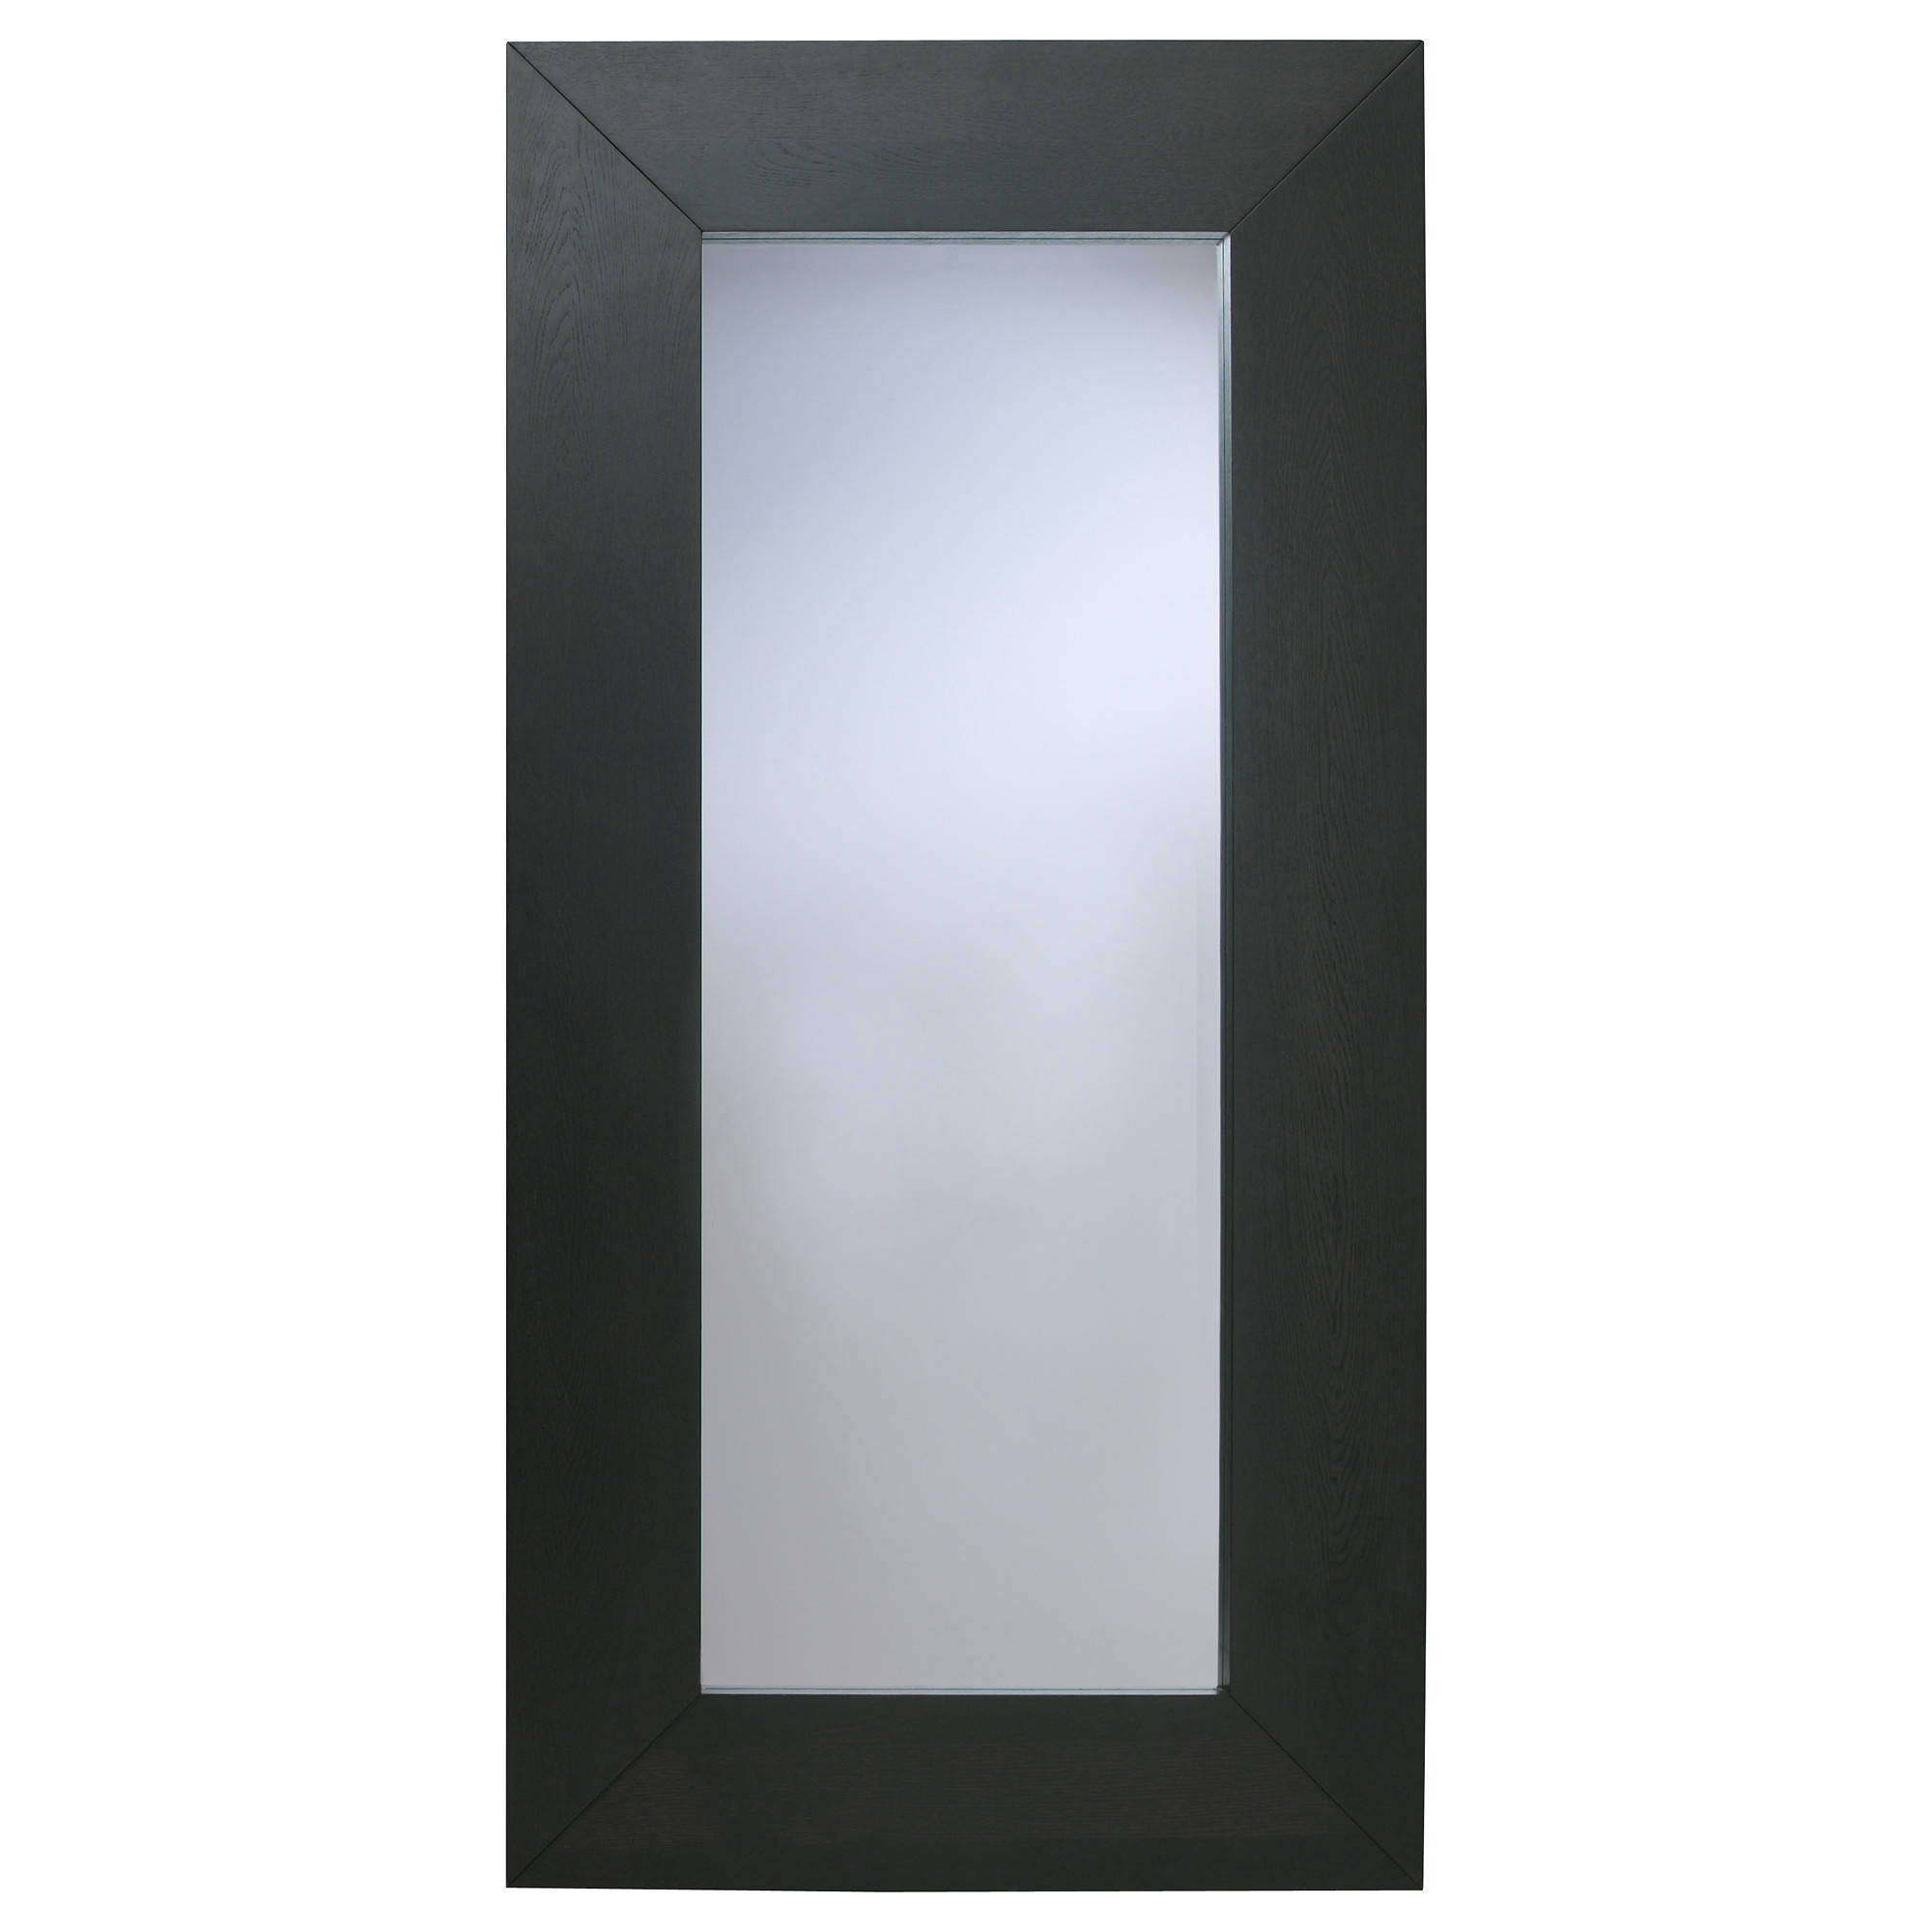 Mongstad Mirror Black Brown 94×190 Cm Ikea In Black Mirrors For Sale (Image 12 of 15)